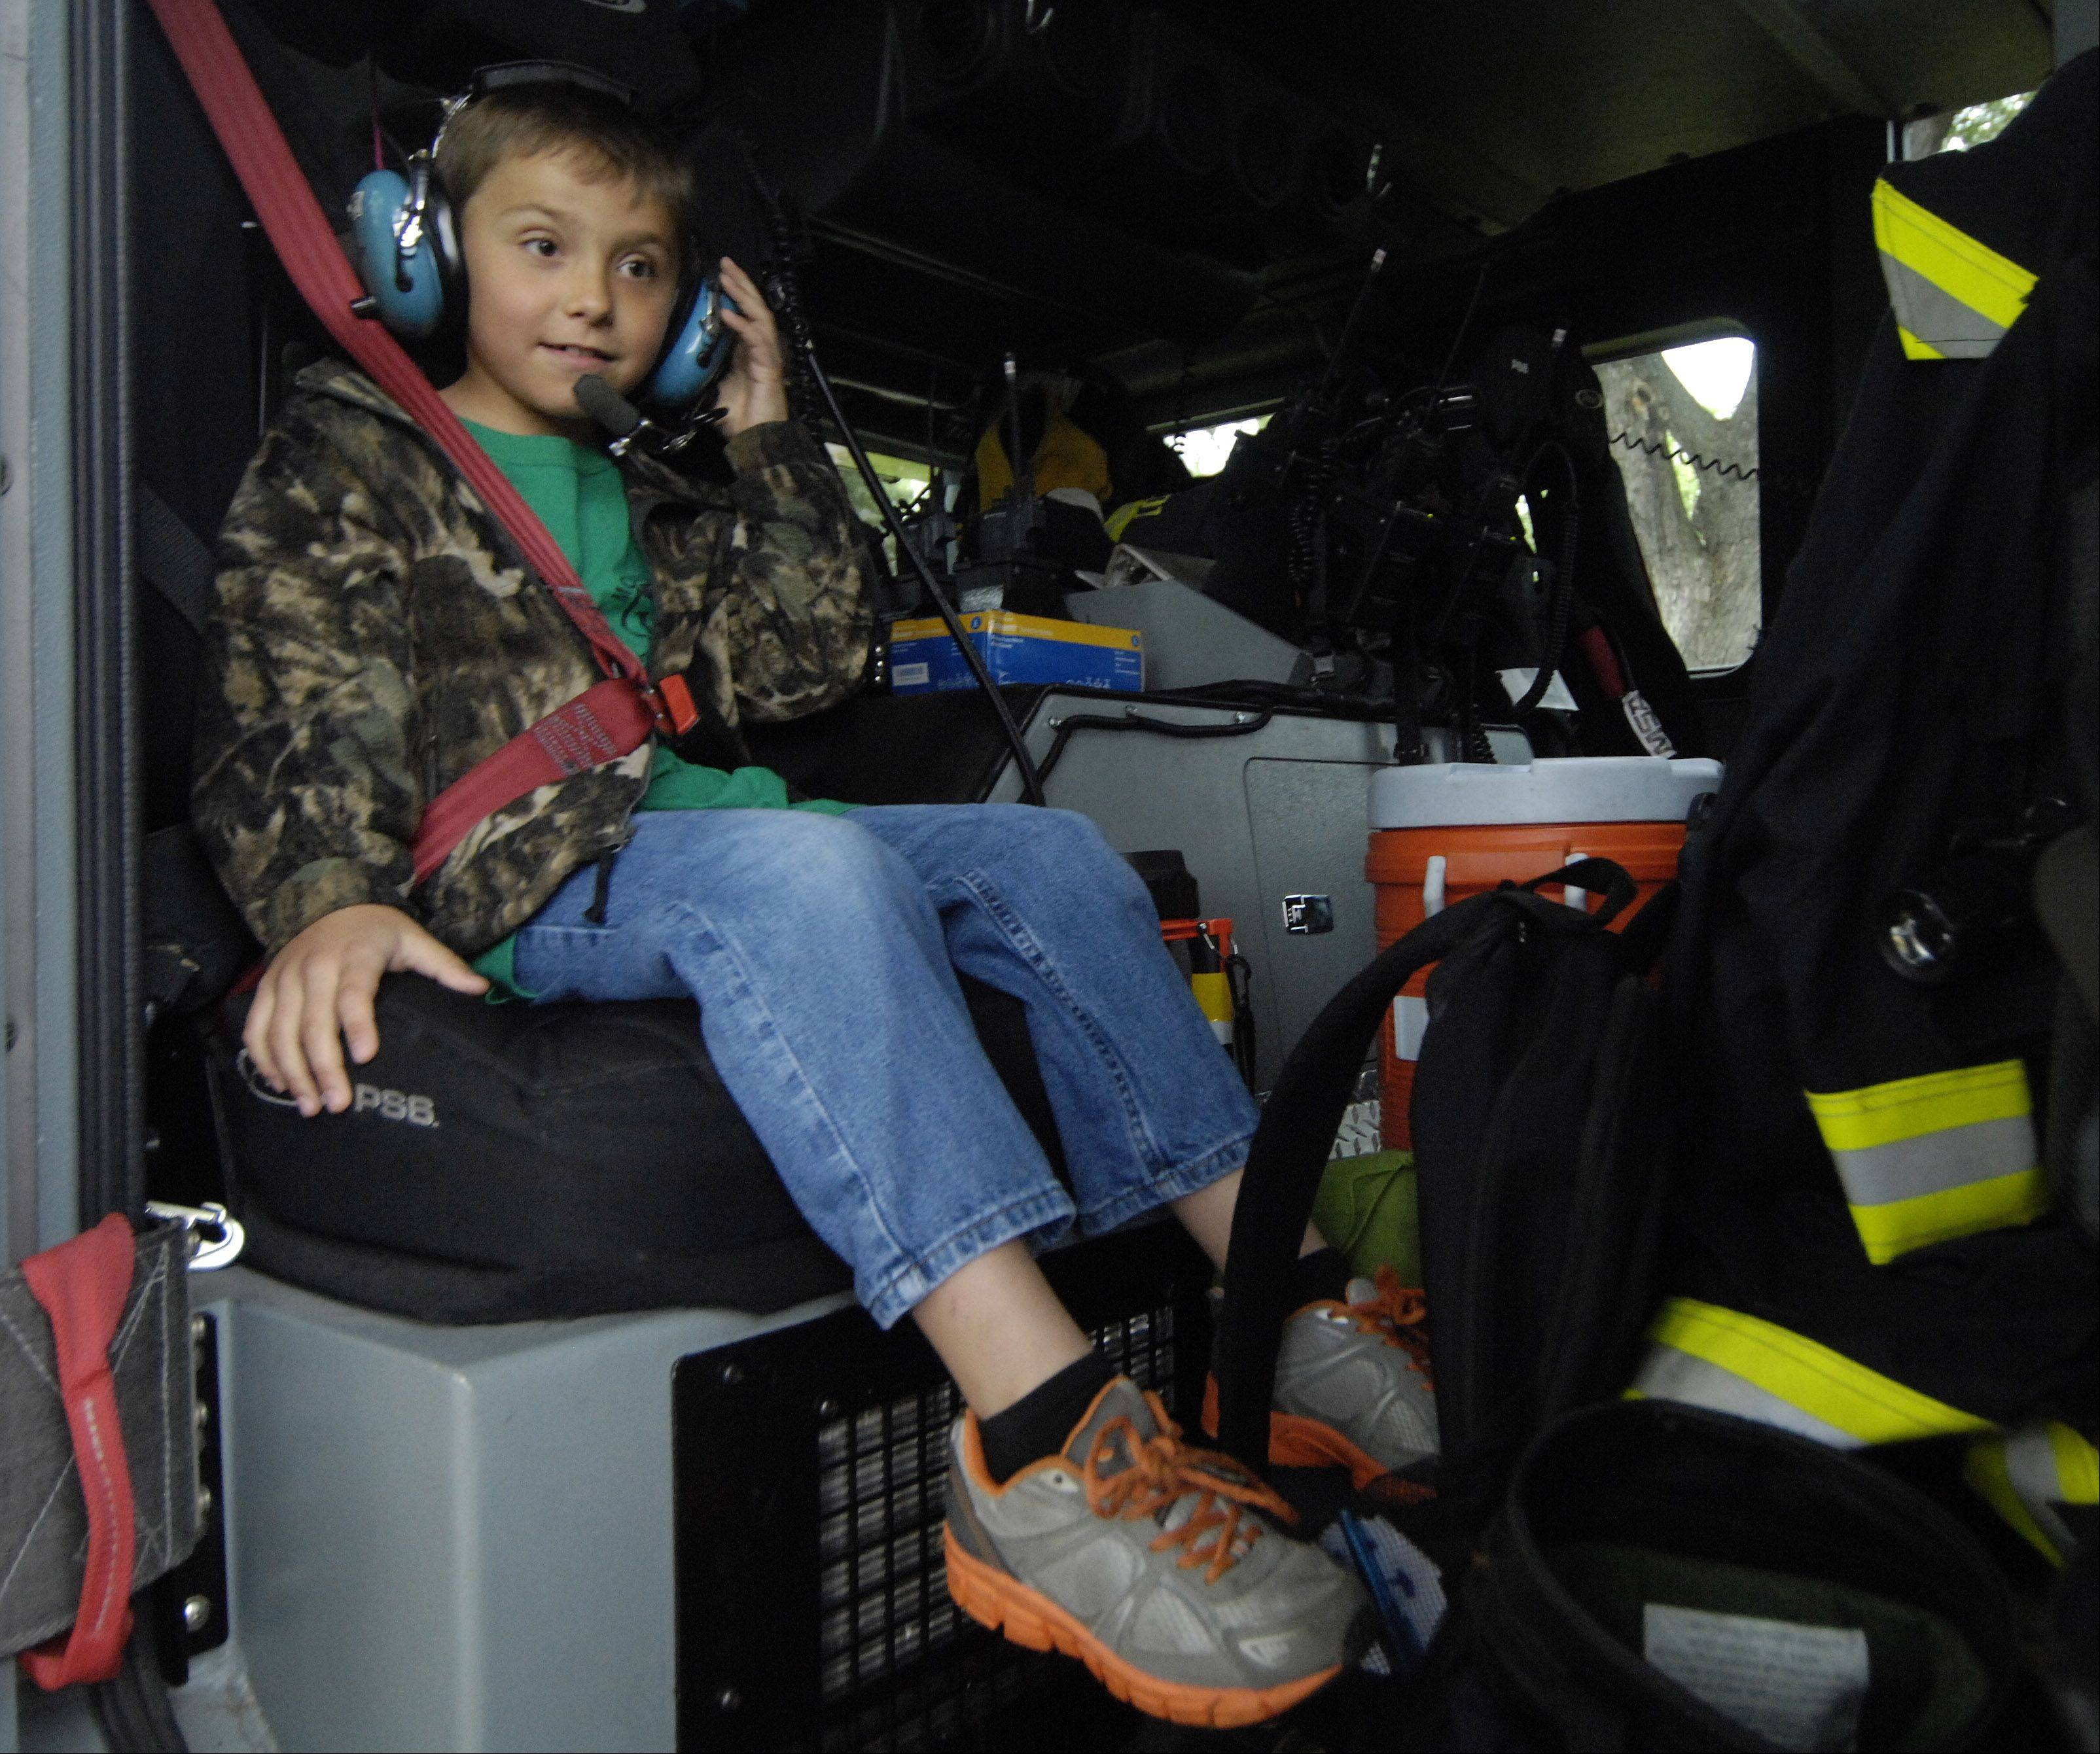 Second grader Carter Jedras is buckled in as he and a friend get a ride on a fire truck to Fairview Elementary School in Mount Prospect Thursday. The opportunity was an auction item for a school fundraiser.